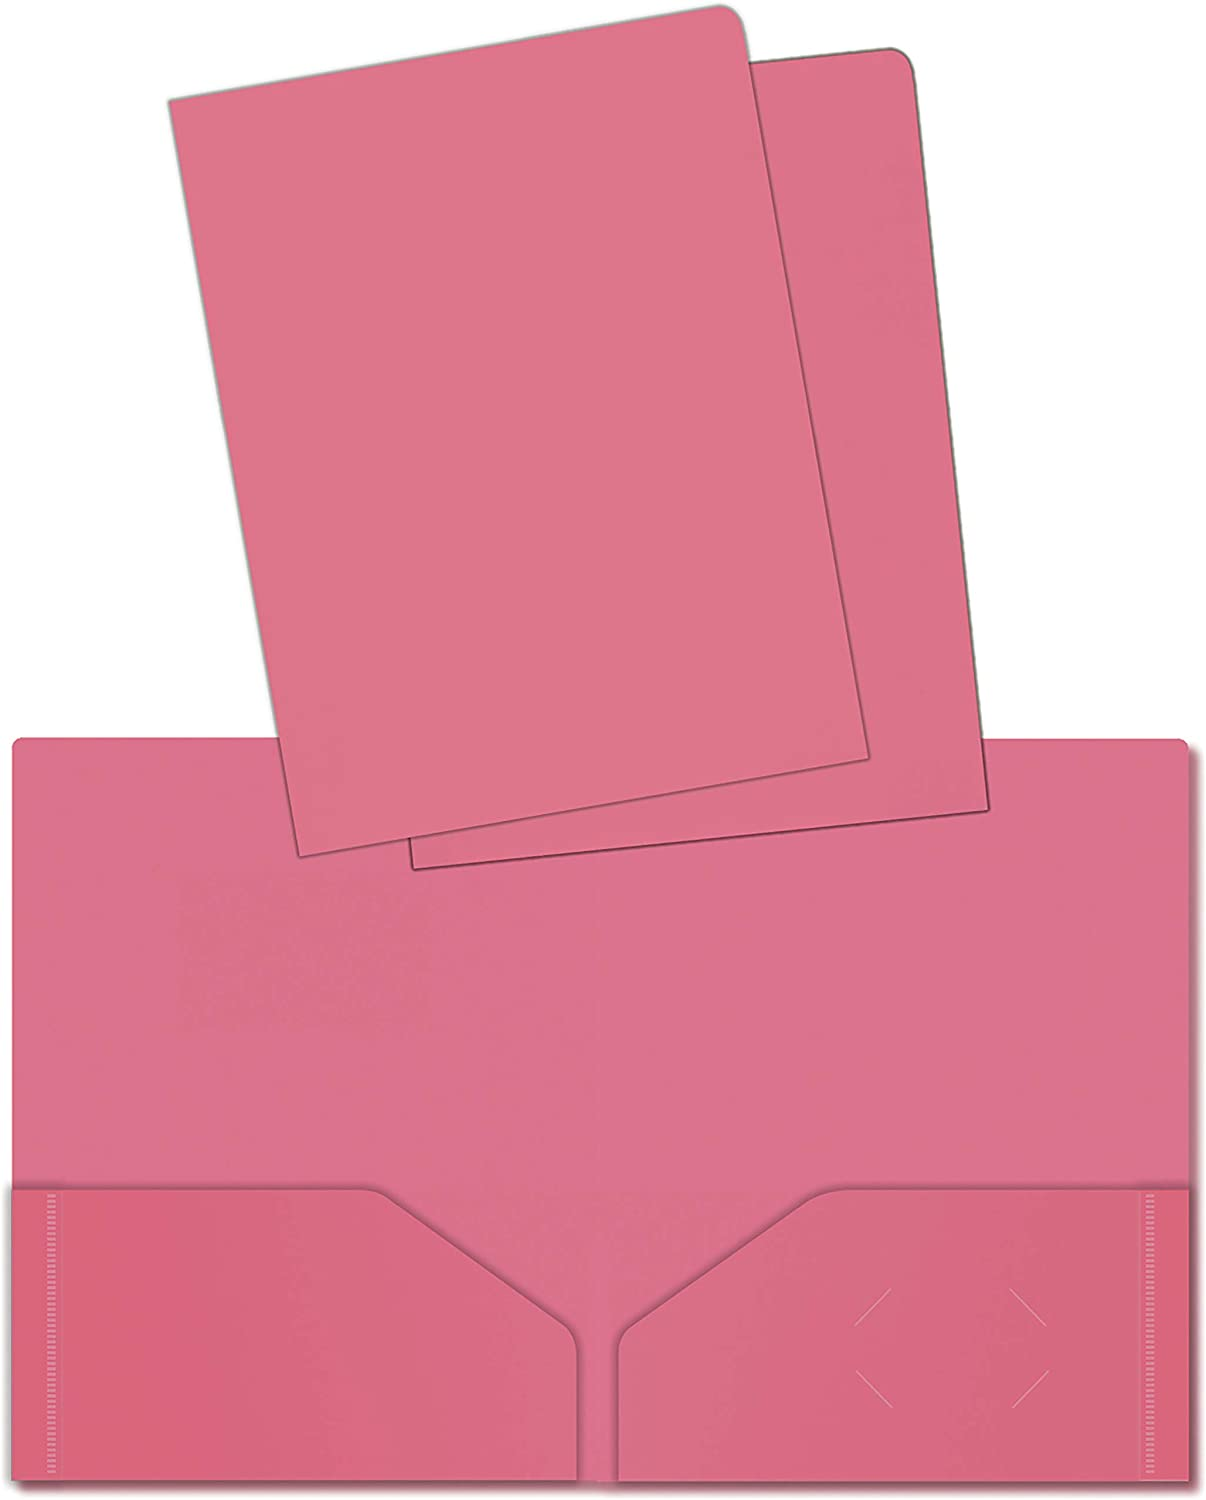 Heavyweight Plastic 2 Pocket Portfolio Folder, Letter Size Poly Folders by Better Office Products, 24 Pack (Pink)